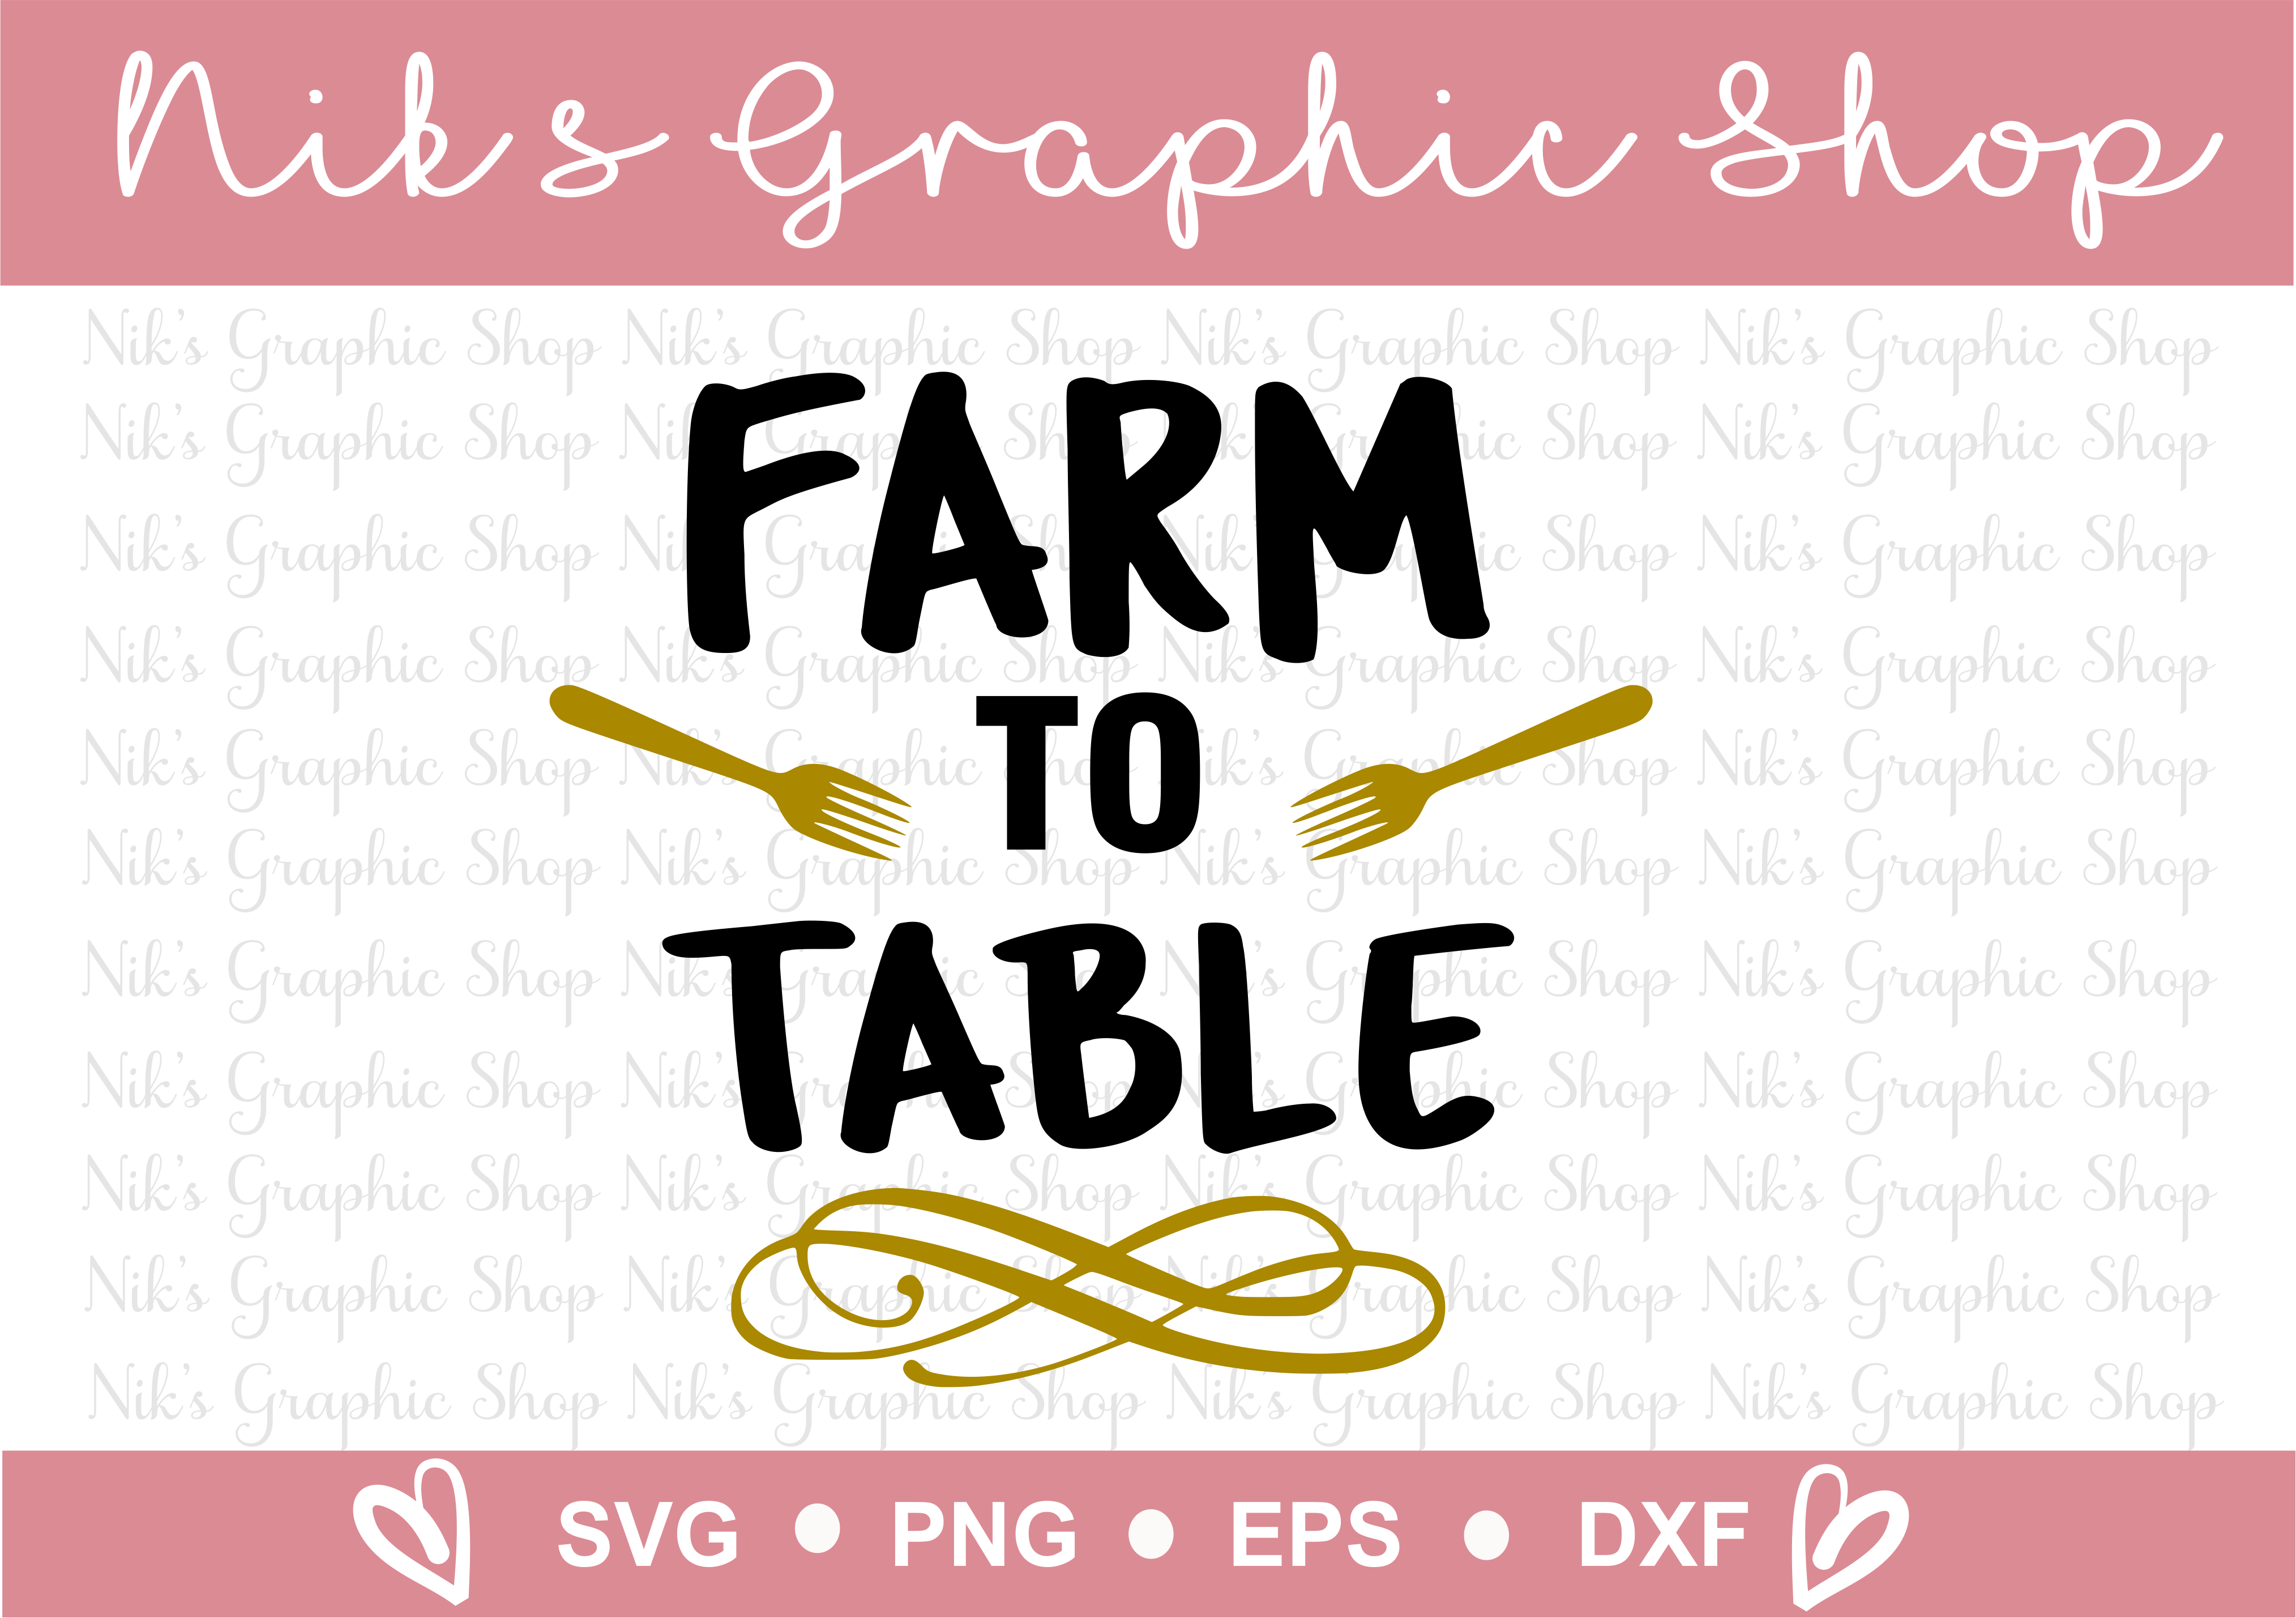 Farm Svgs, Farmers Svgs, Farmers Daughter Svg, Farm sweet example image 2